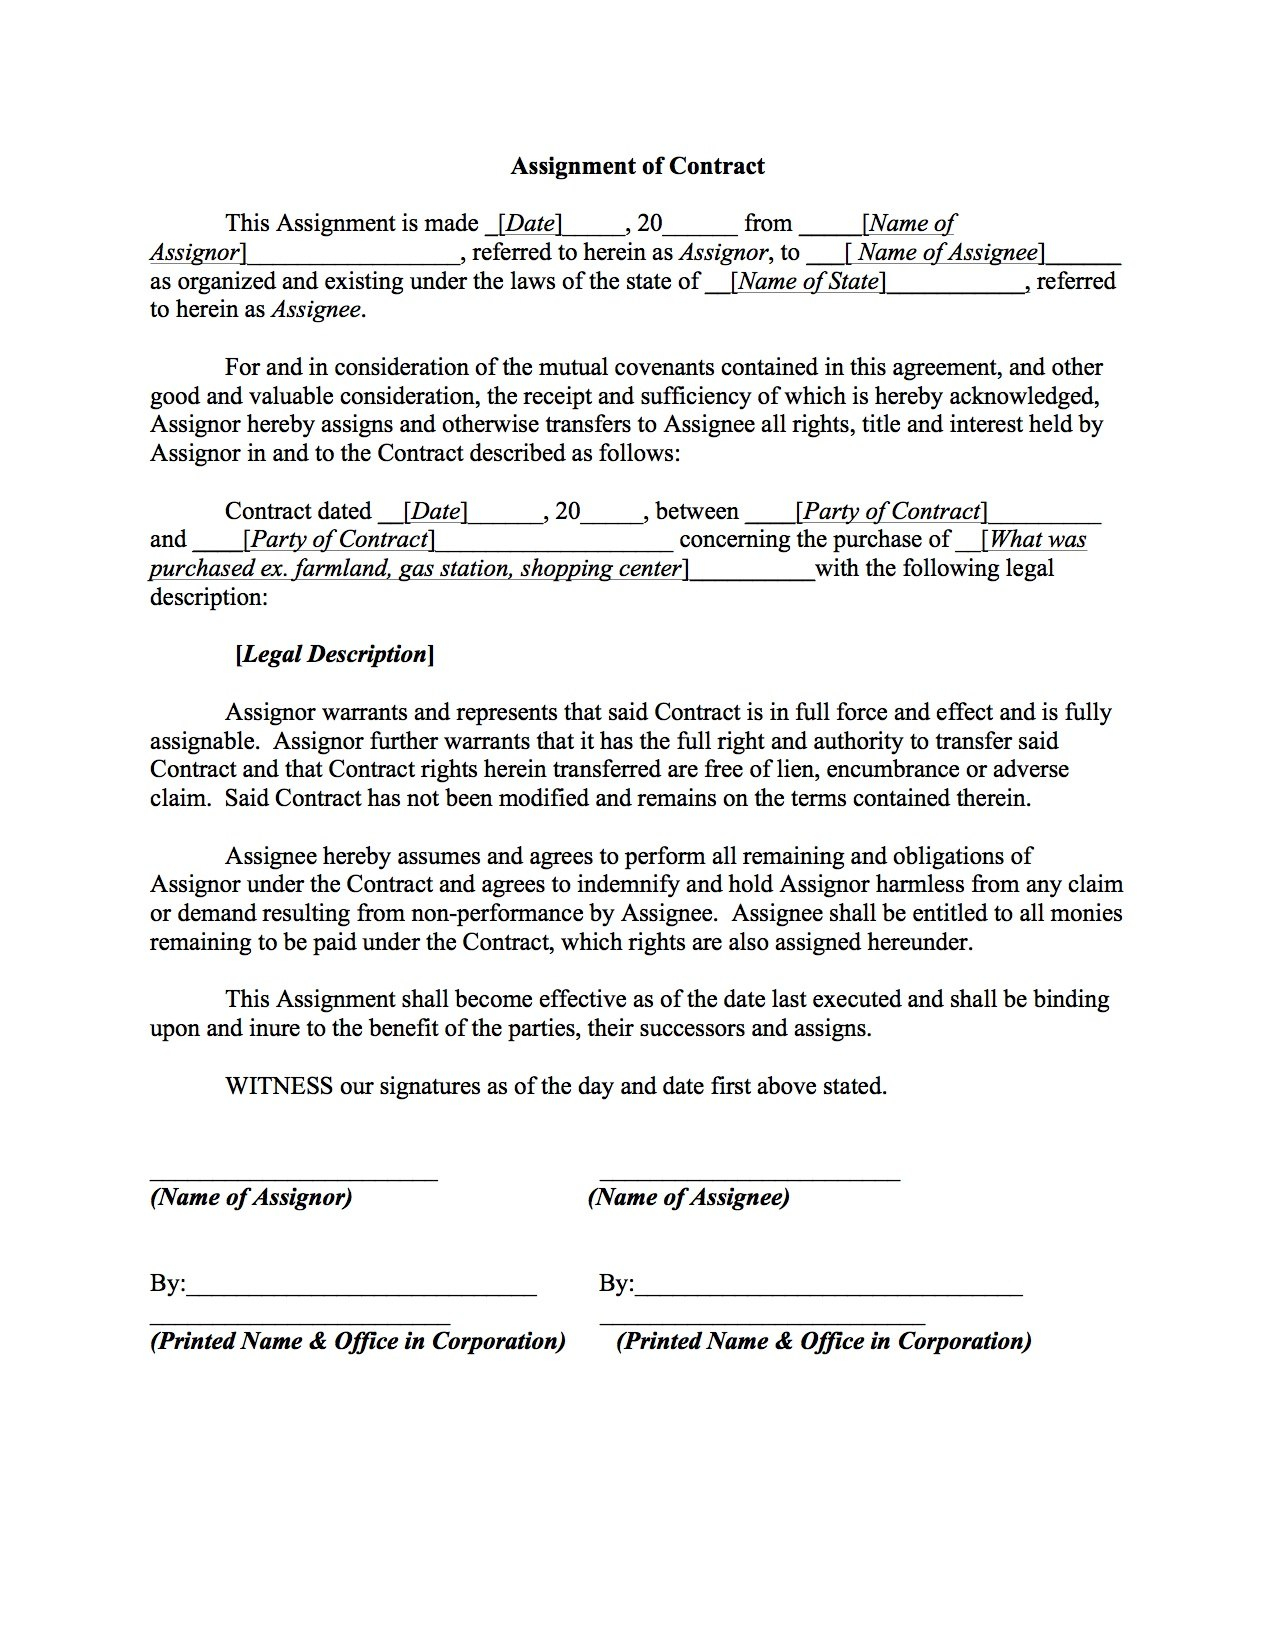 Assignment Of Contract Template – Boardwalk Legal Aids Intended For Claim Assignment Agreement Template